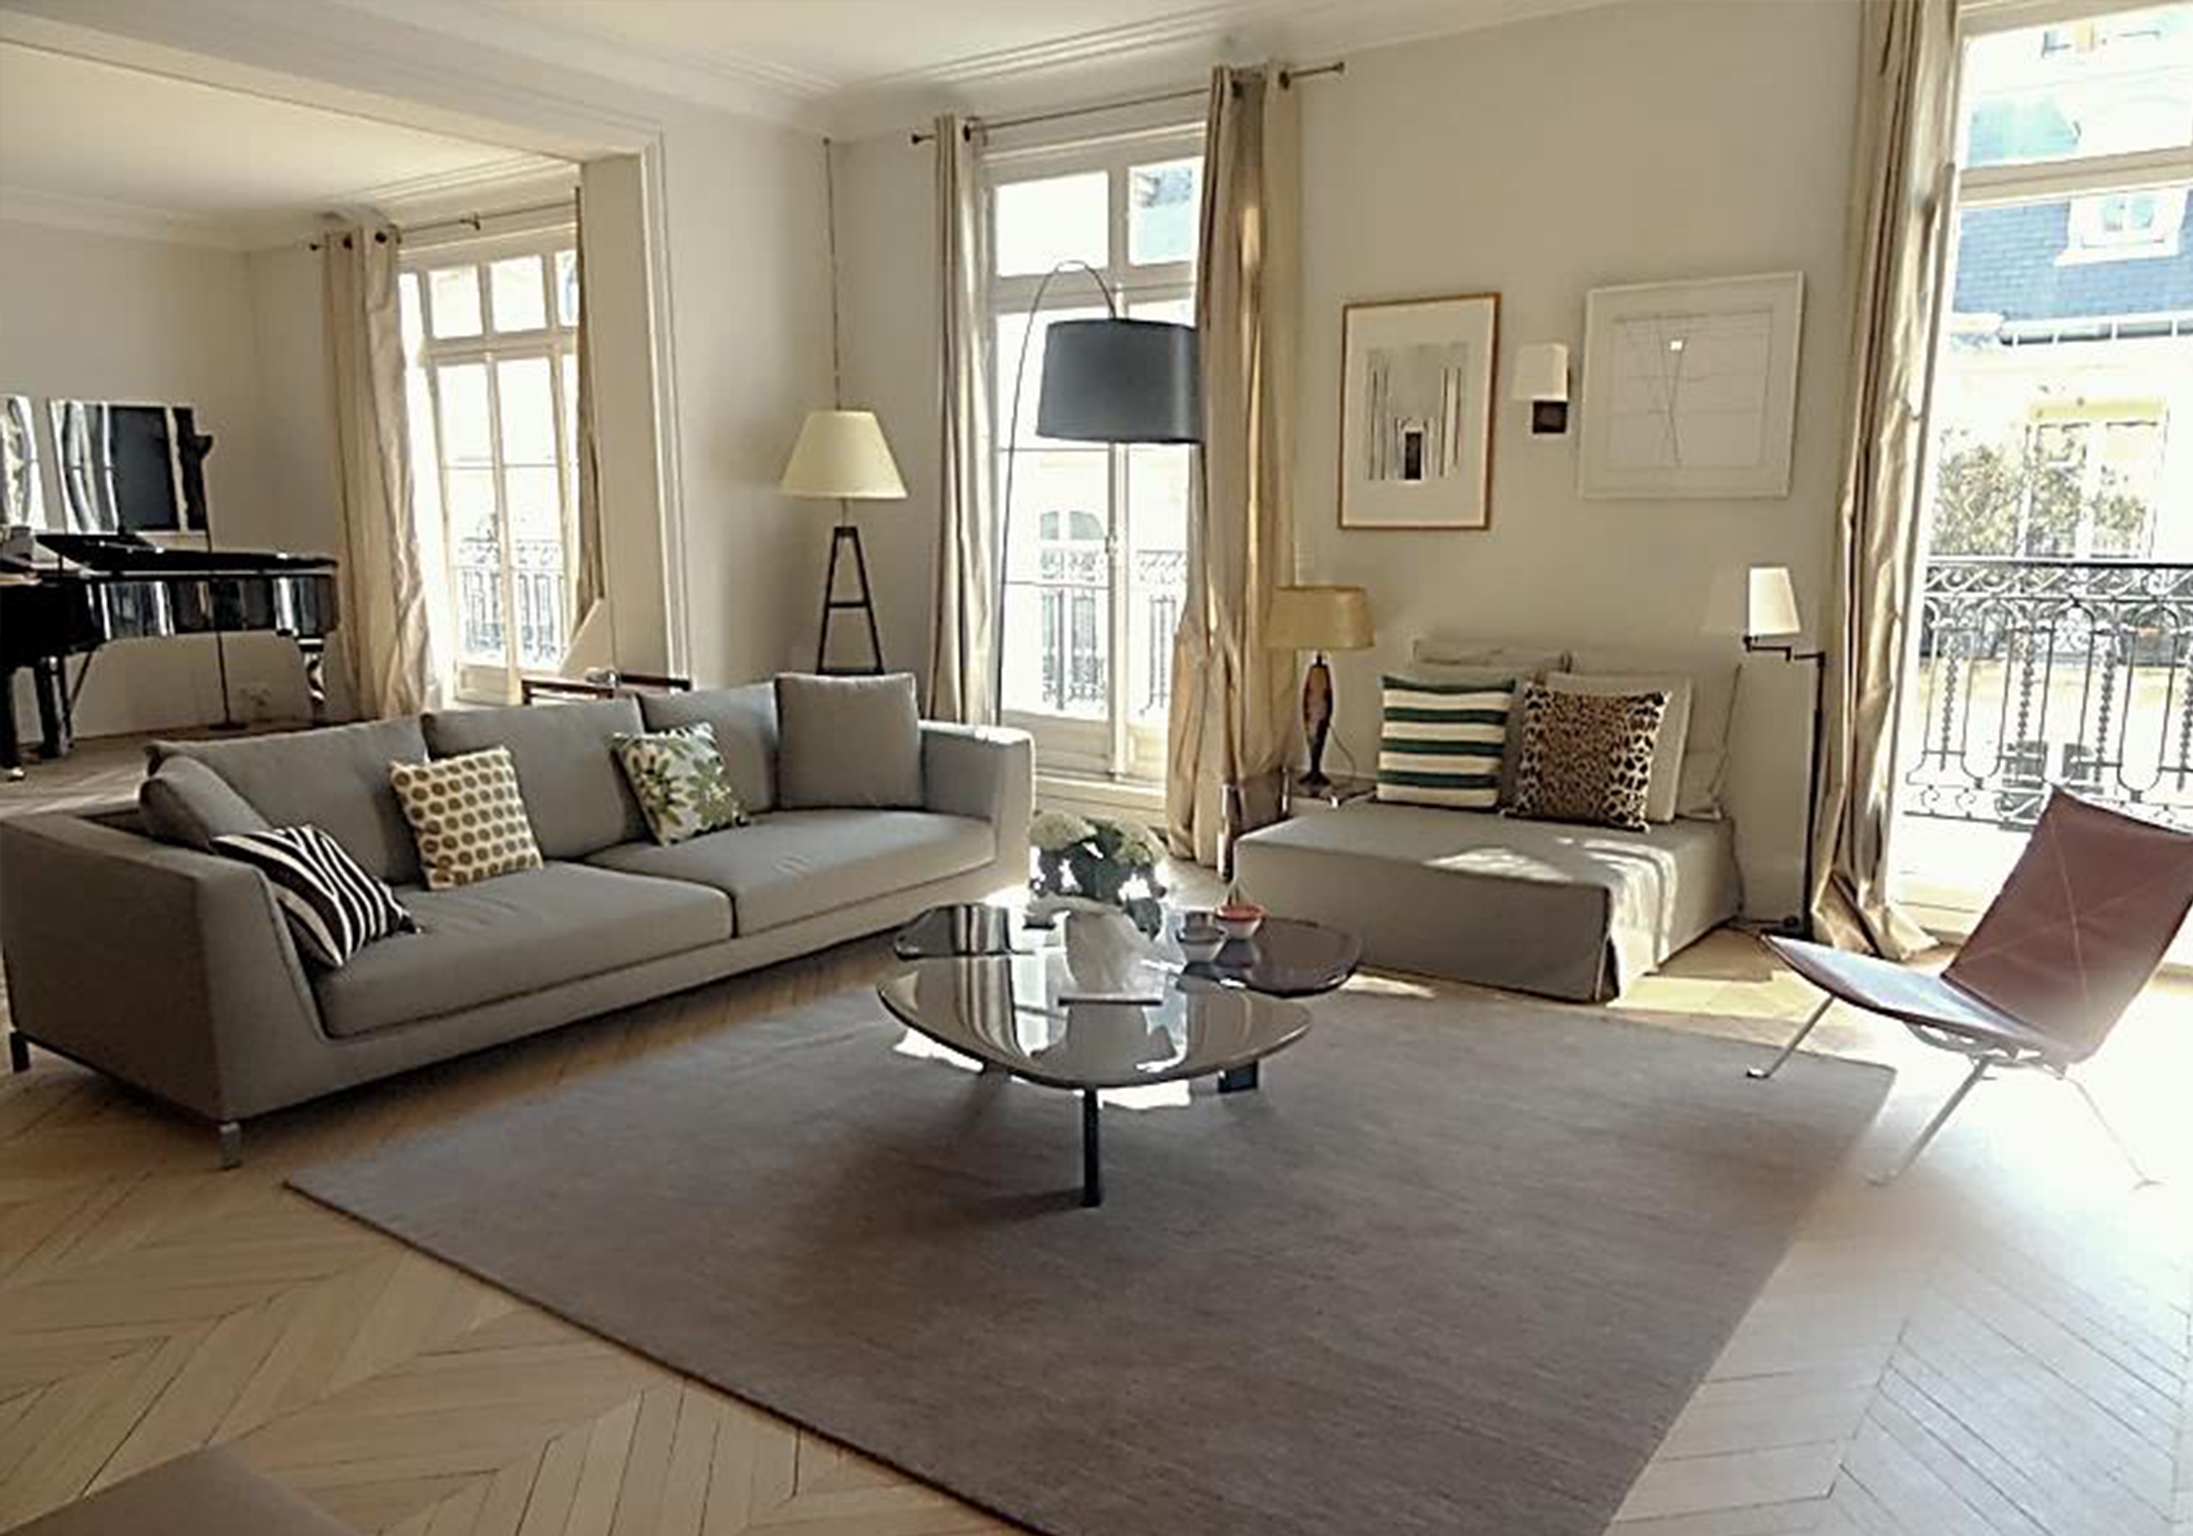 Interieur singulier appartement paris 16 - Salon moderne ...